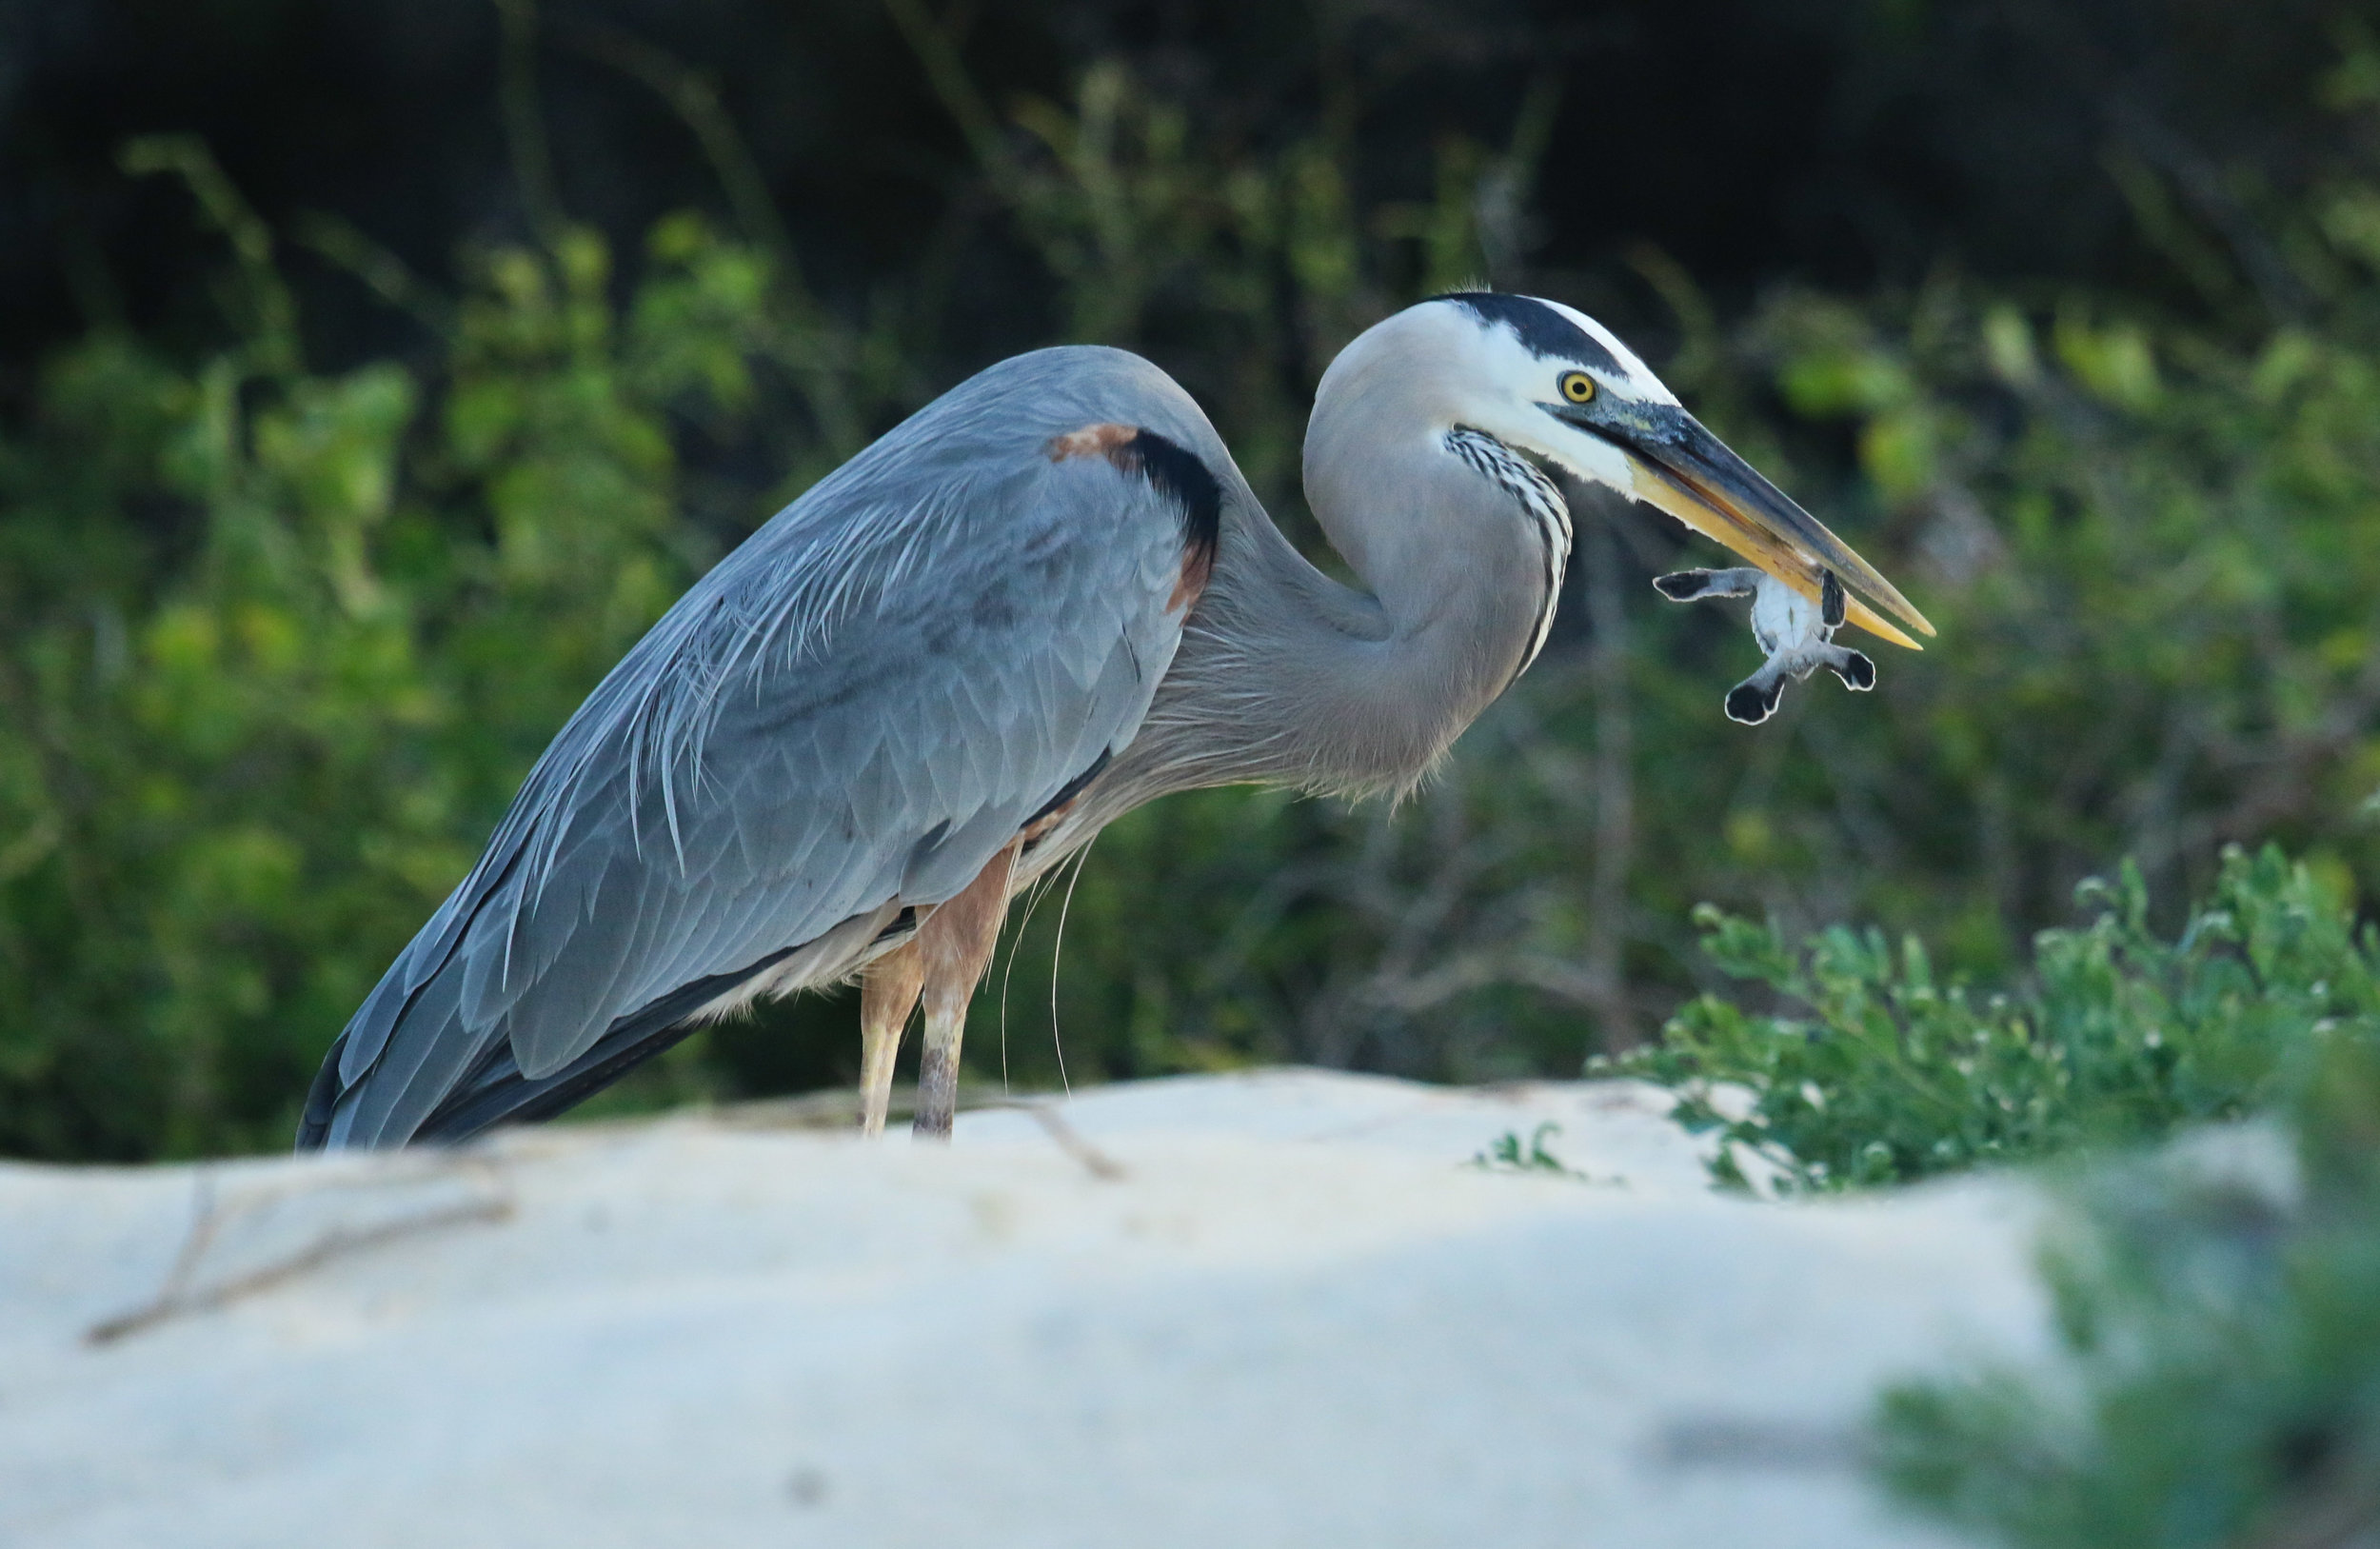 Blue Heron eating Baby Green Sea Turtle Galapagos Islands Ecuador by Millie Kerr -1.jpg